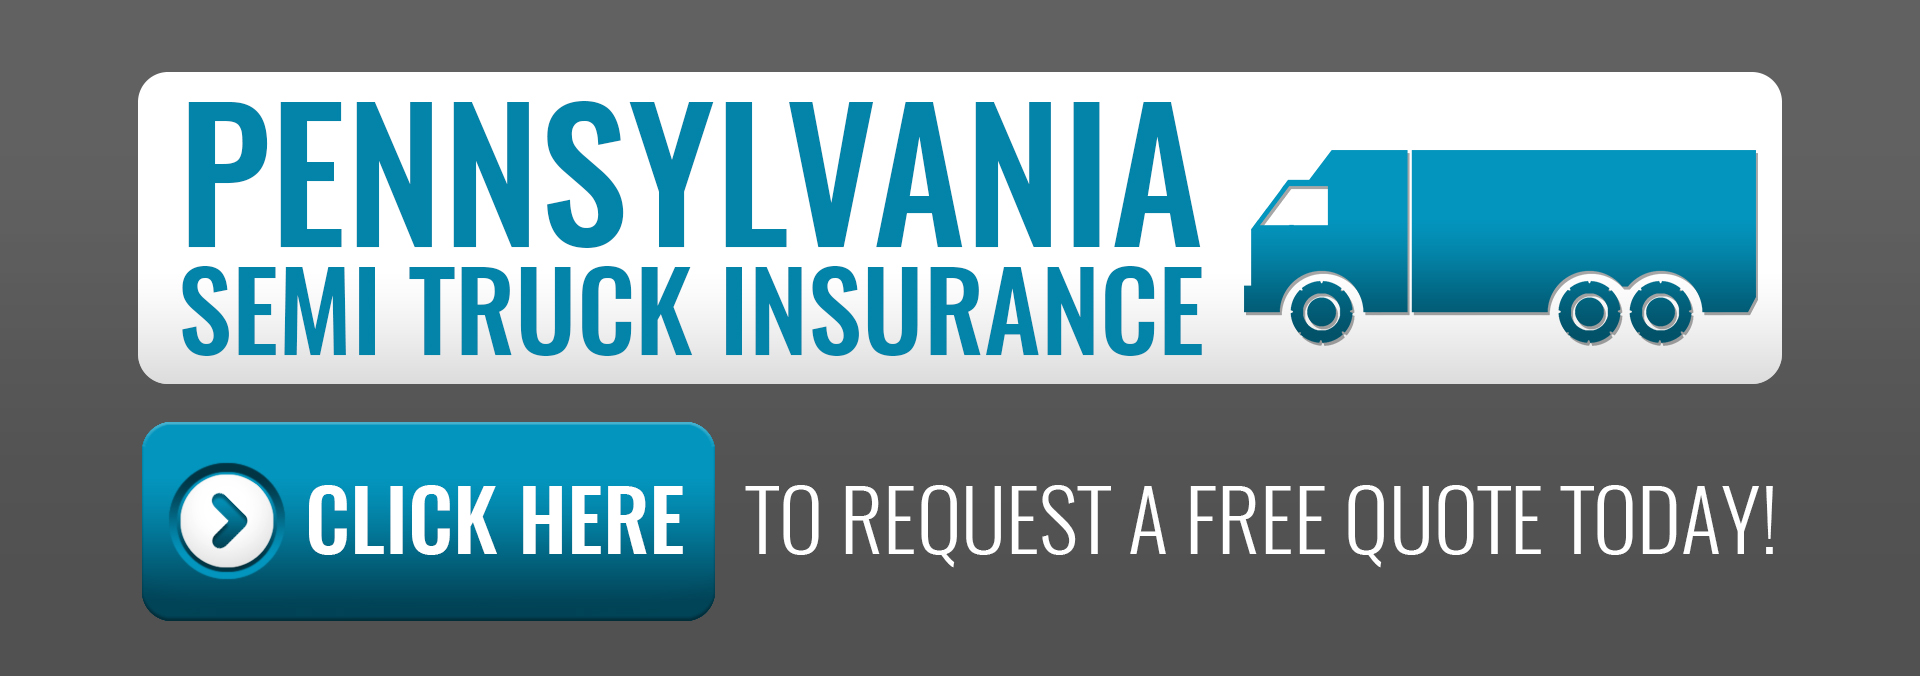 PA Commercial Truck Insurance